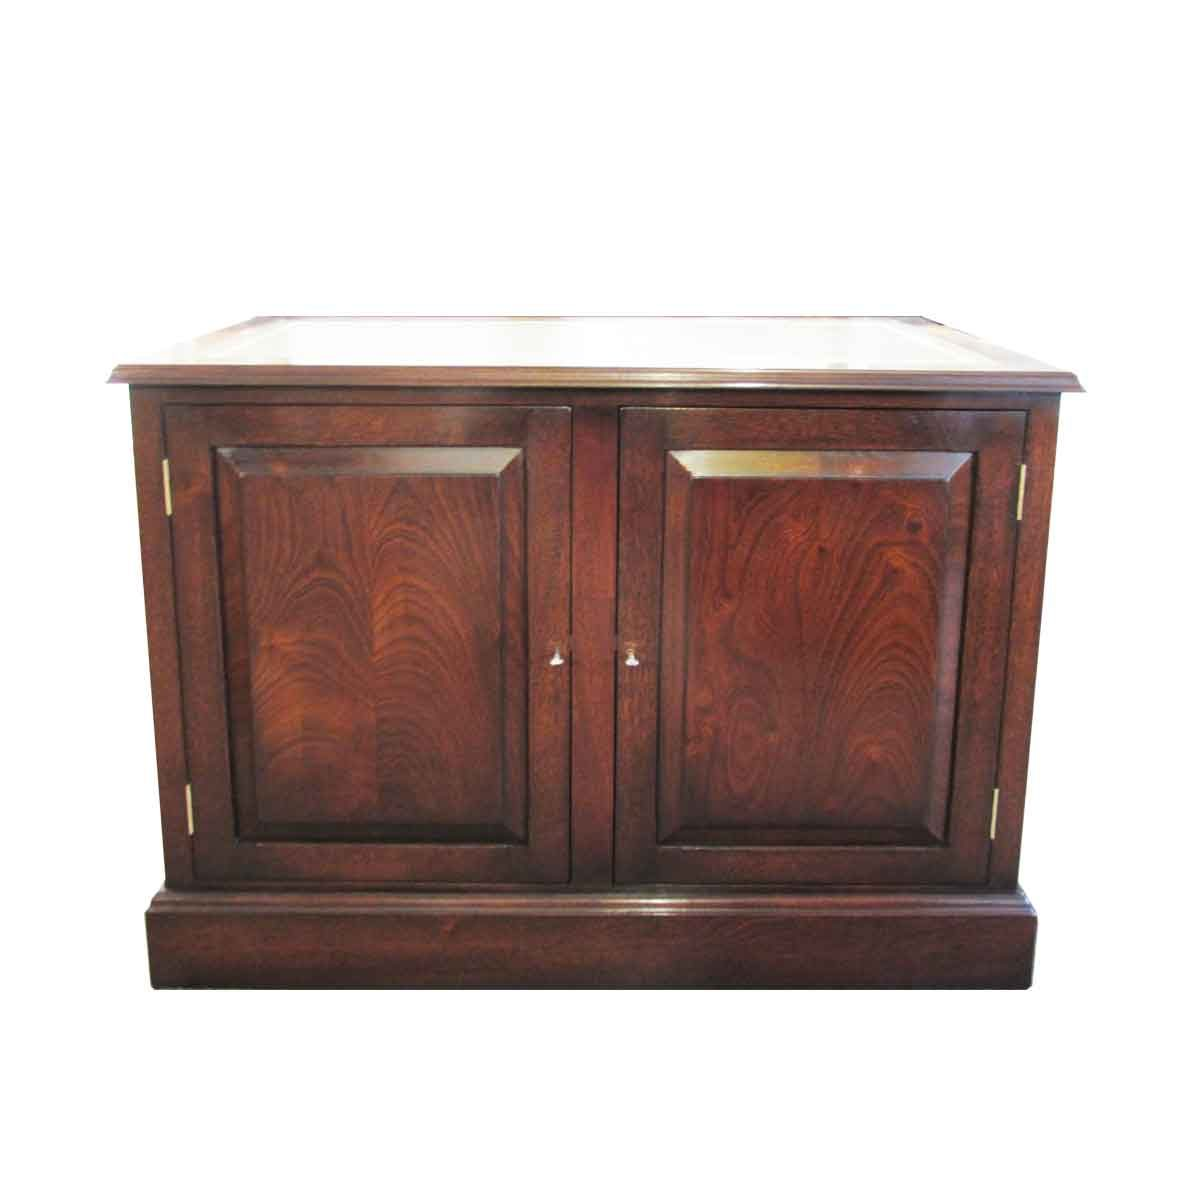 Bespoke Country Bedside Cabinets Handcrafted in Suffolk